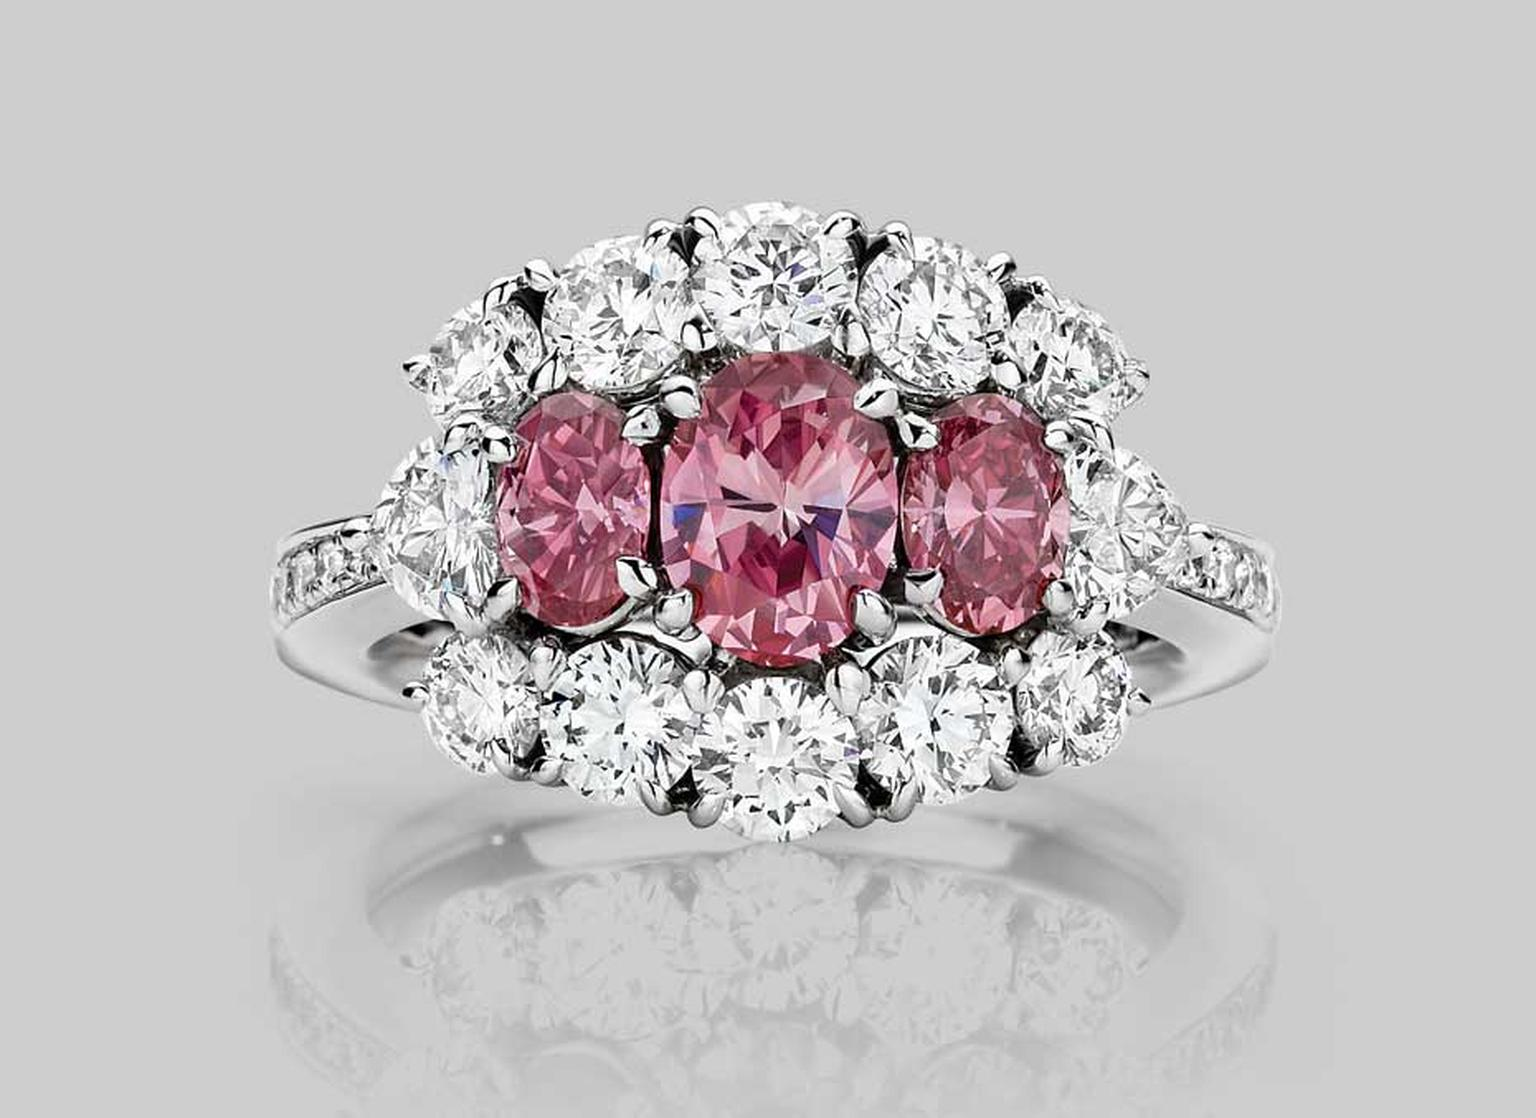 J. Farren-Price Trilogy 70th anniversary ring, with a trio of gems that feature a 0.59ct vivid purple pink, oval-cut Argyle diamond in the centre. Available at www.jfarrenprice.com.au.